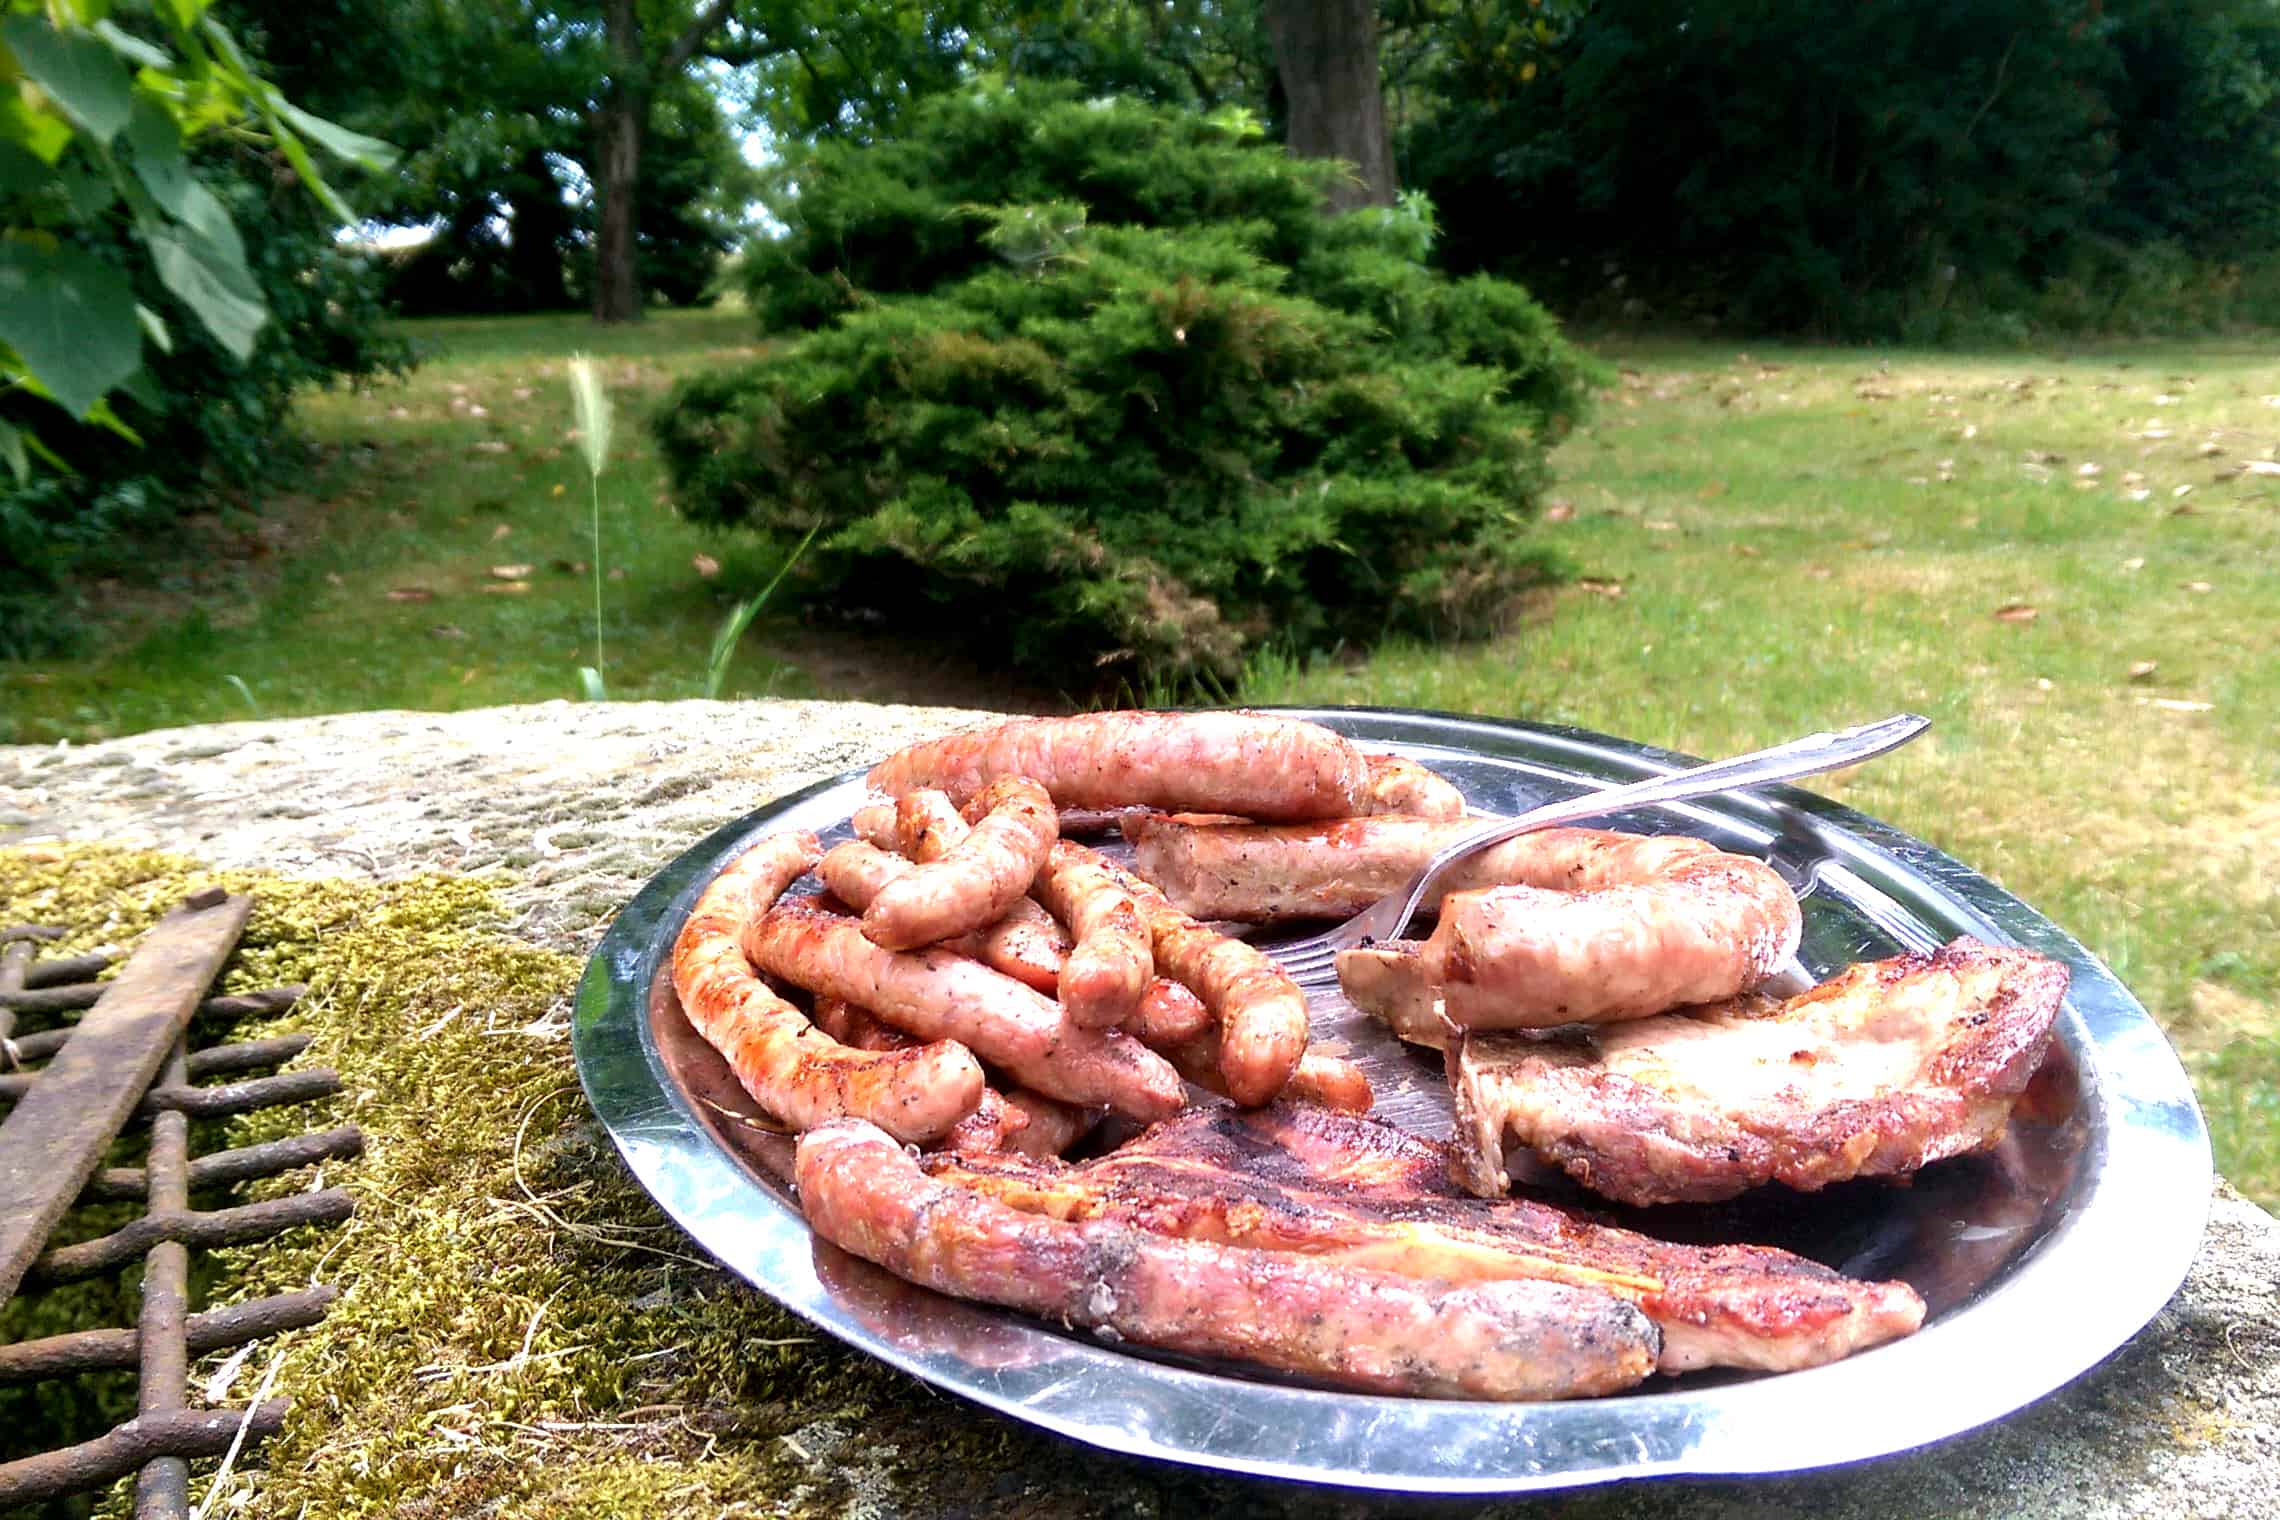 Capadau Organic Pork Farm - Pork sausages, steaks and chops ready to try!